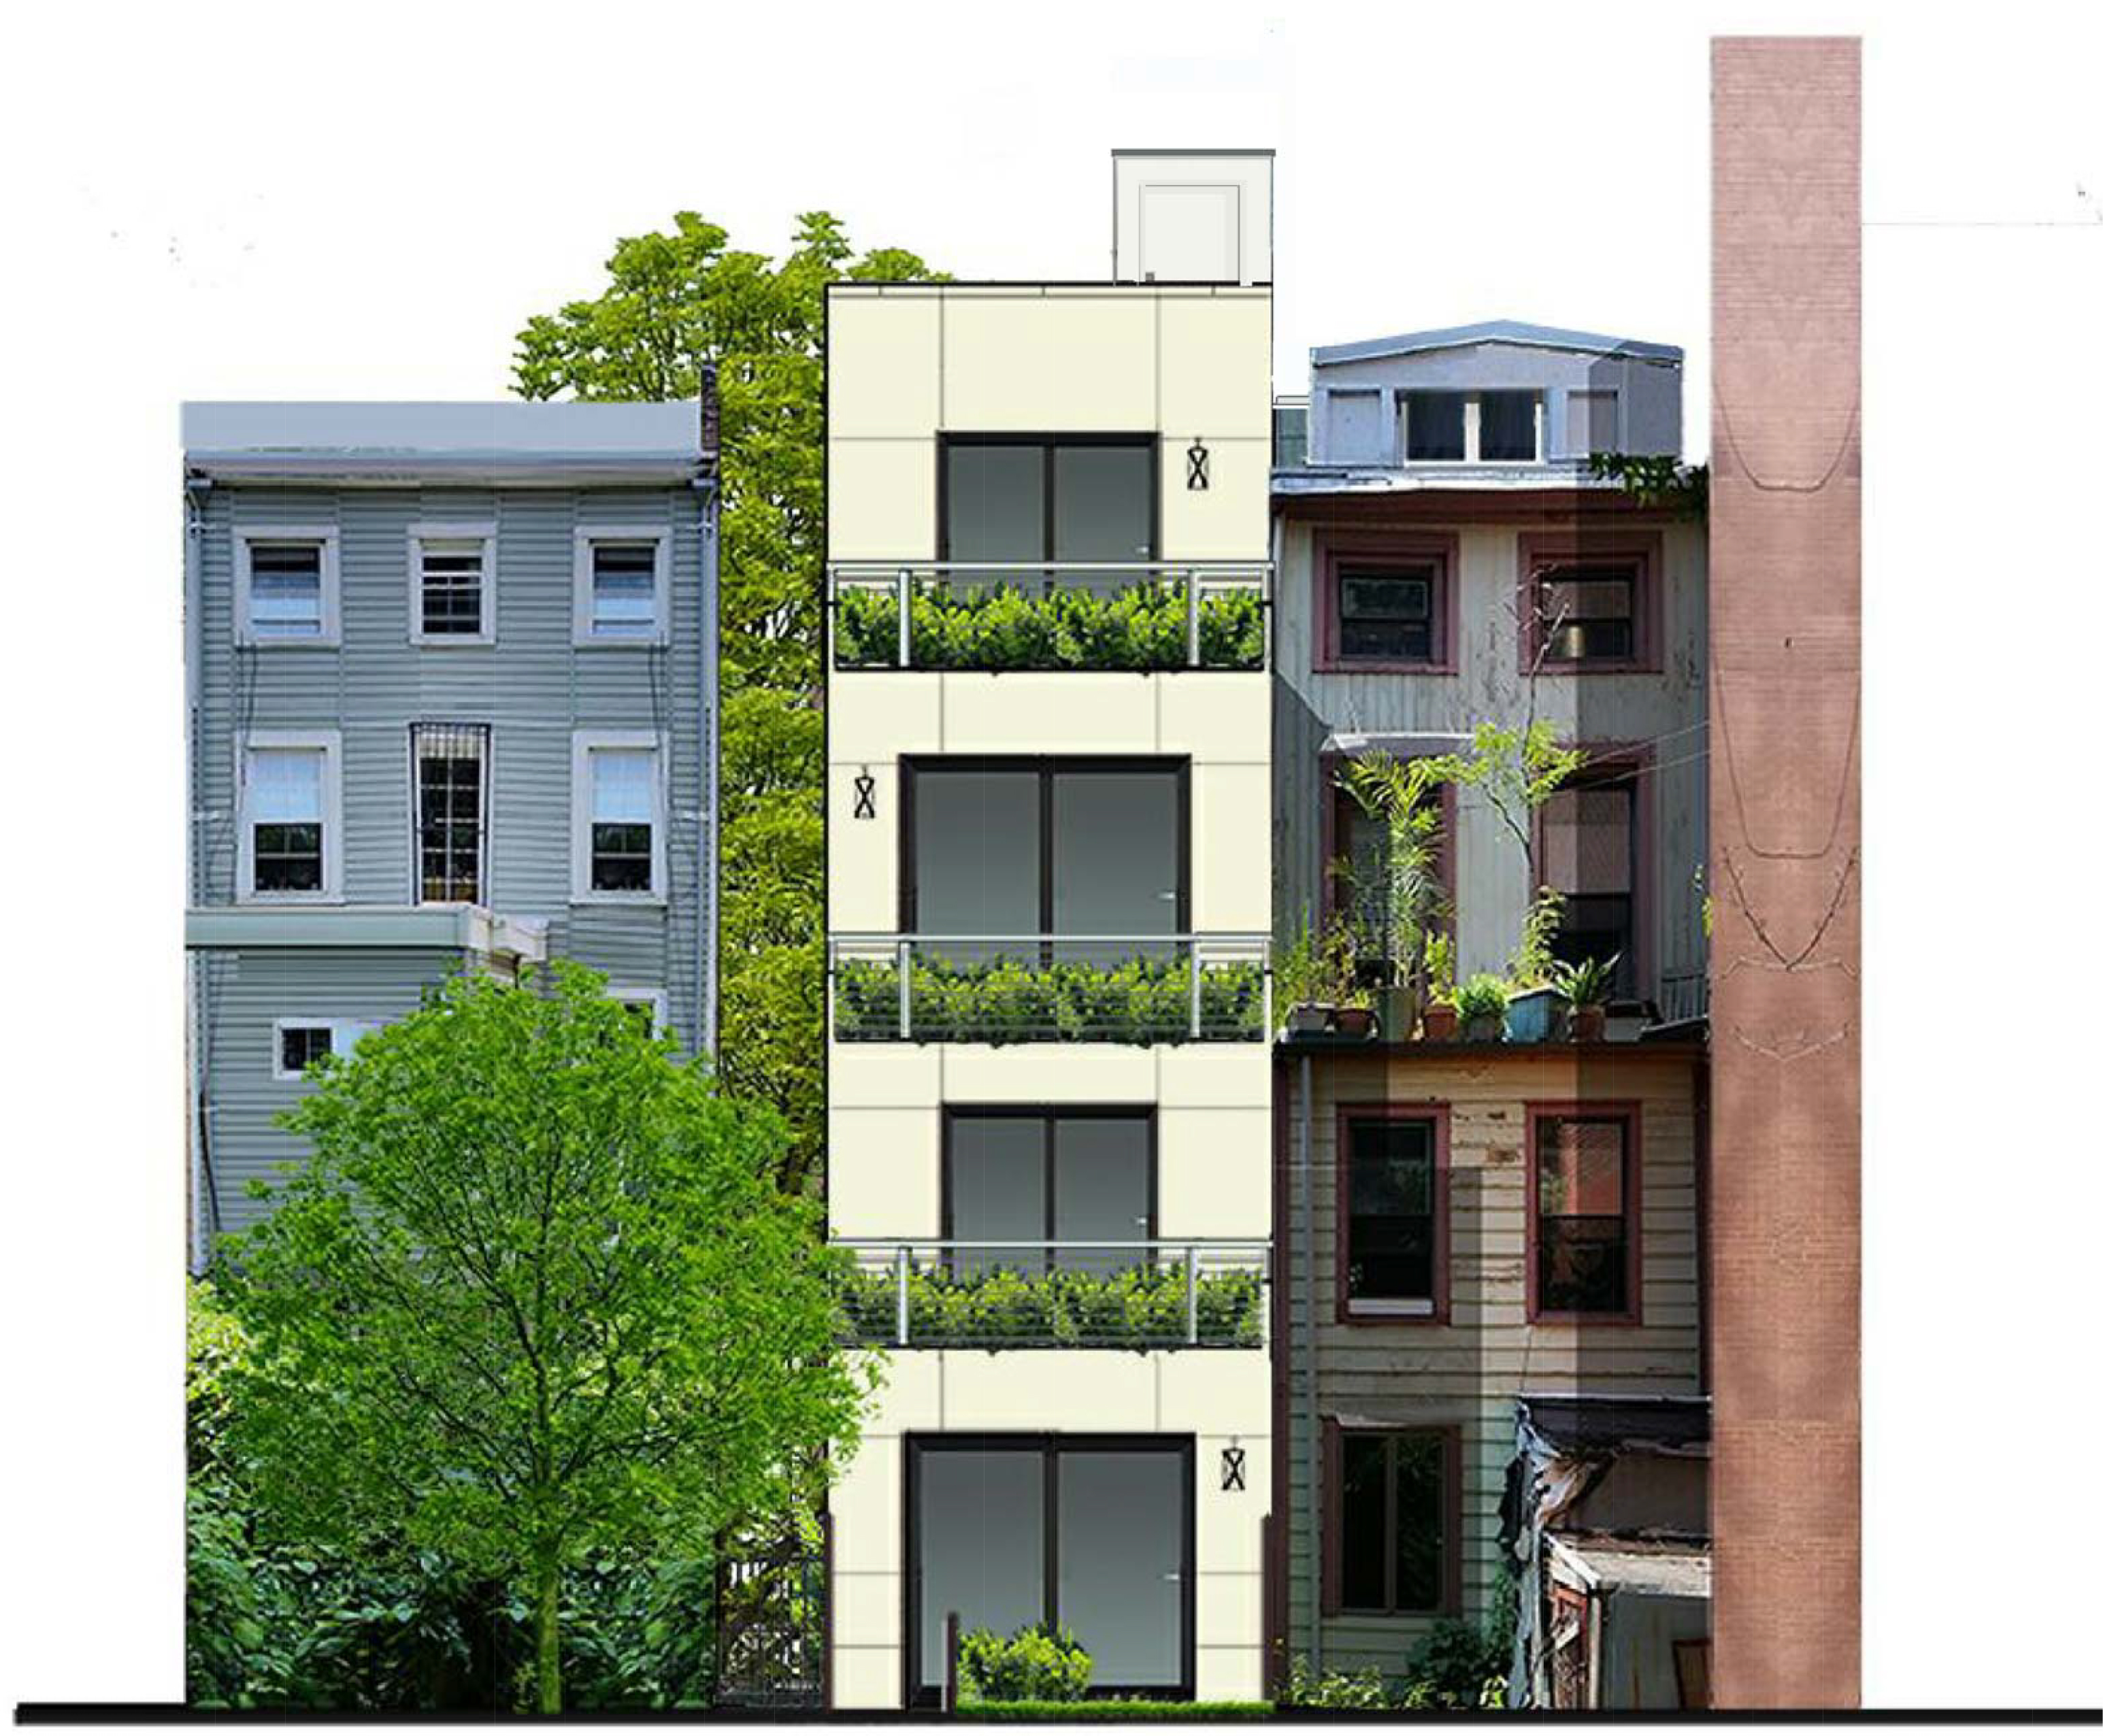 Proposal for rear of 39 South Elliott Place